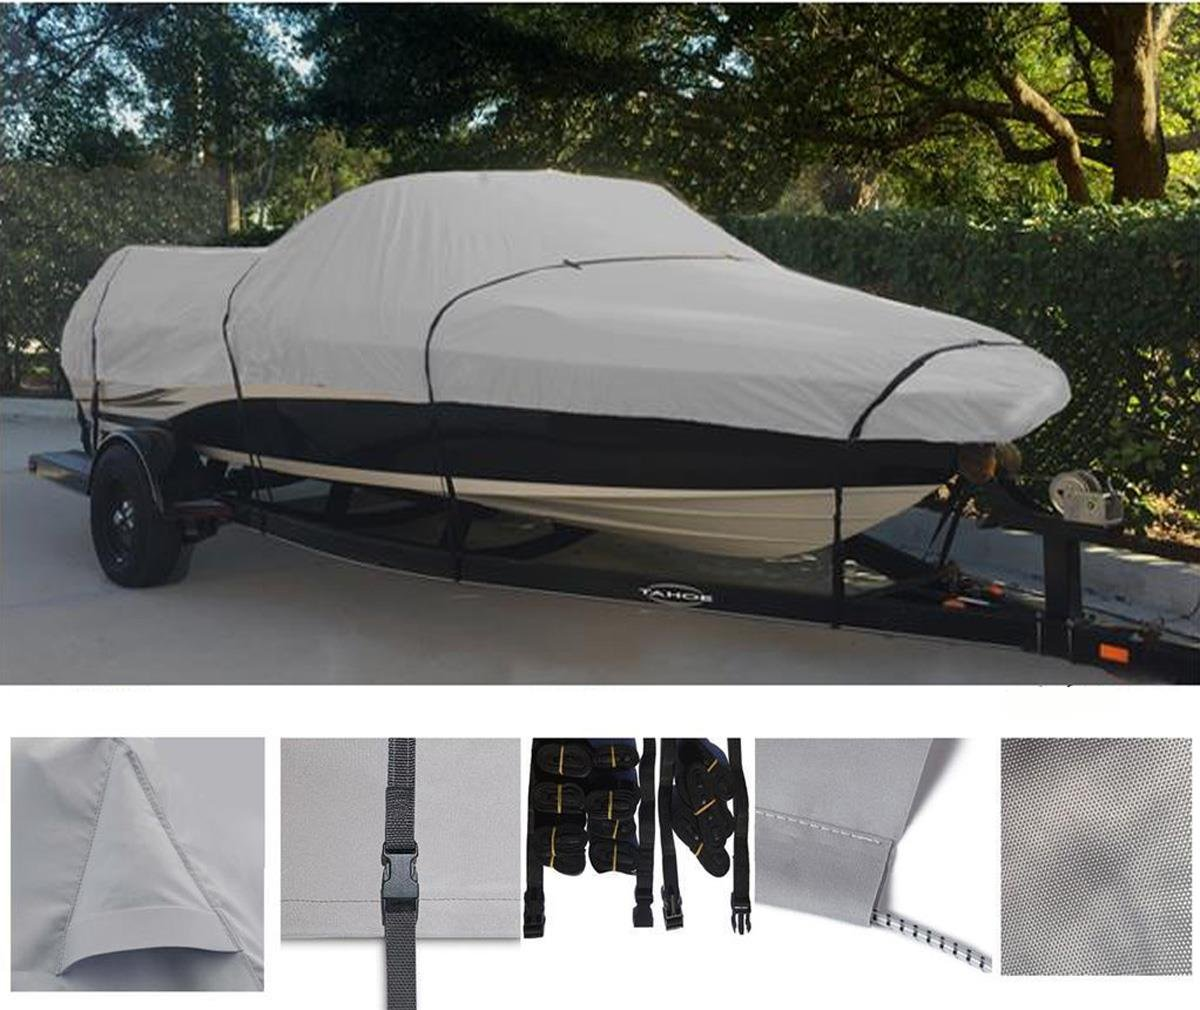 GREY, STORAGE, TRAVEL, MOORING BOAT COVER FOR CHRIS CRAFT 230 S/230 SL SCORPION I/O 1981-1986 by SBU